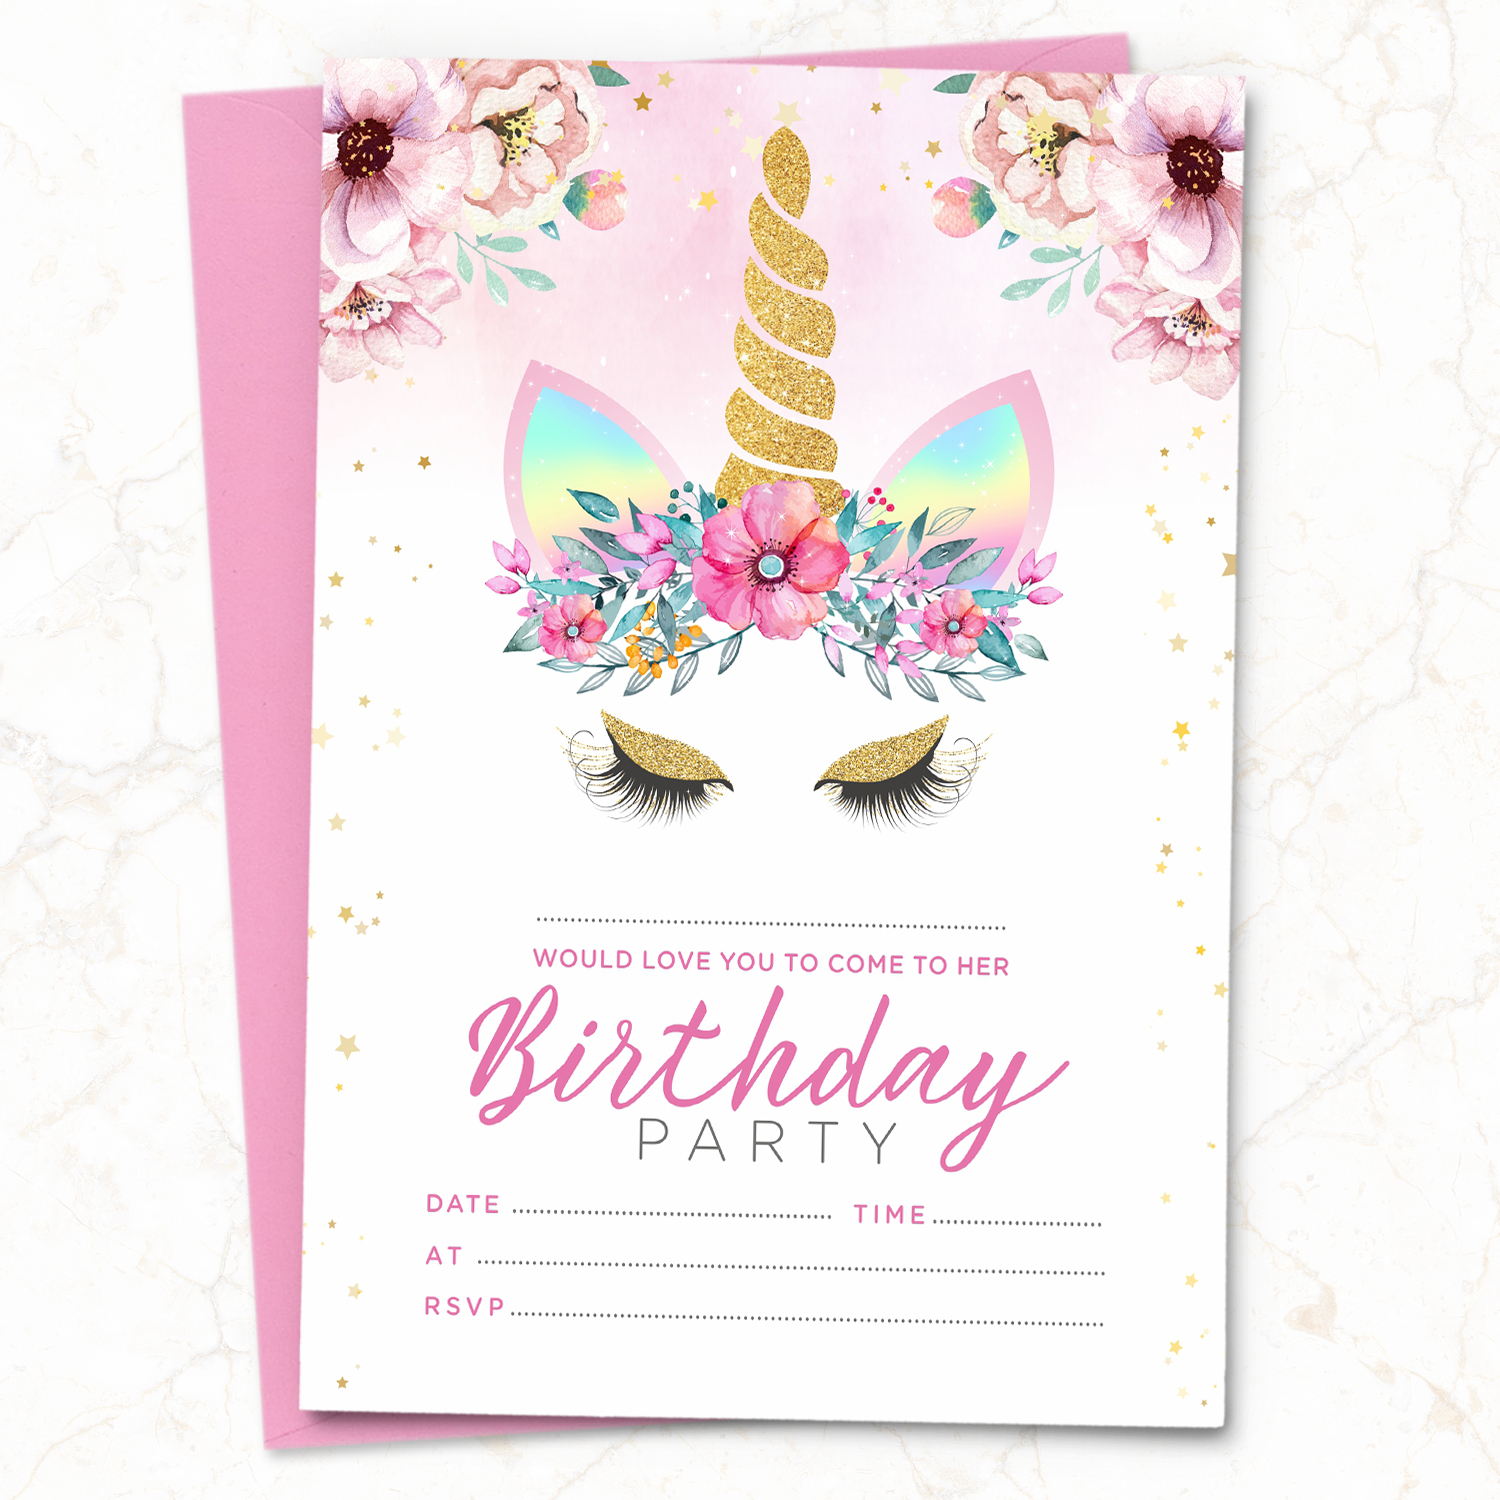 details about 10 x unicorn birthday party invitations invites girl children kids pack